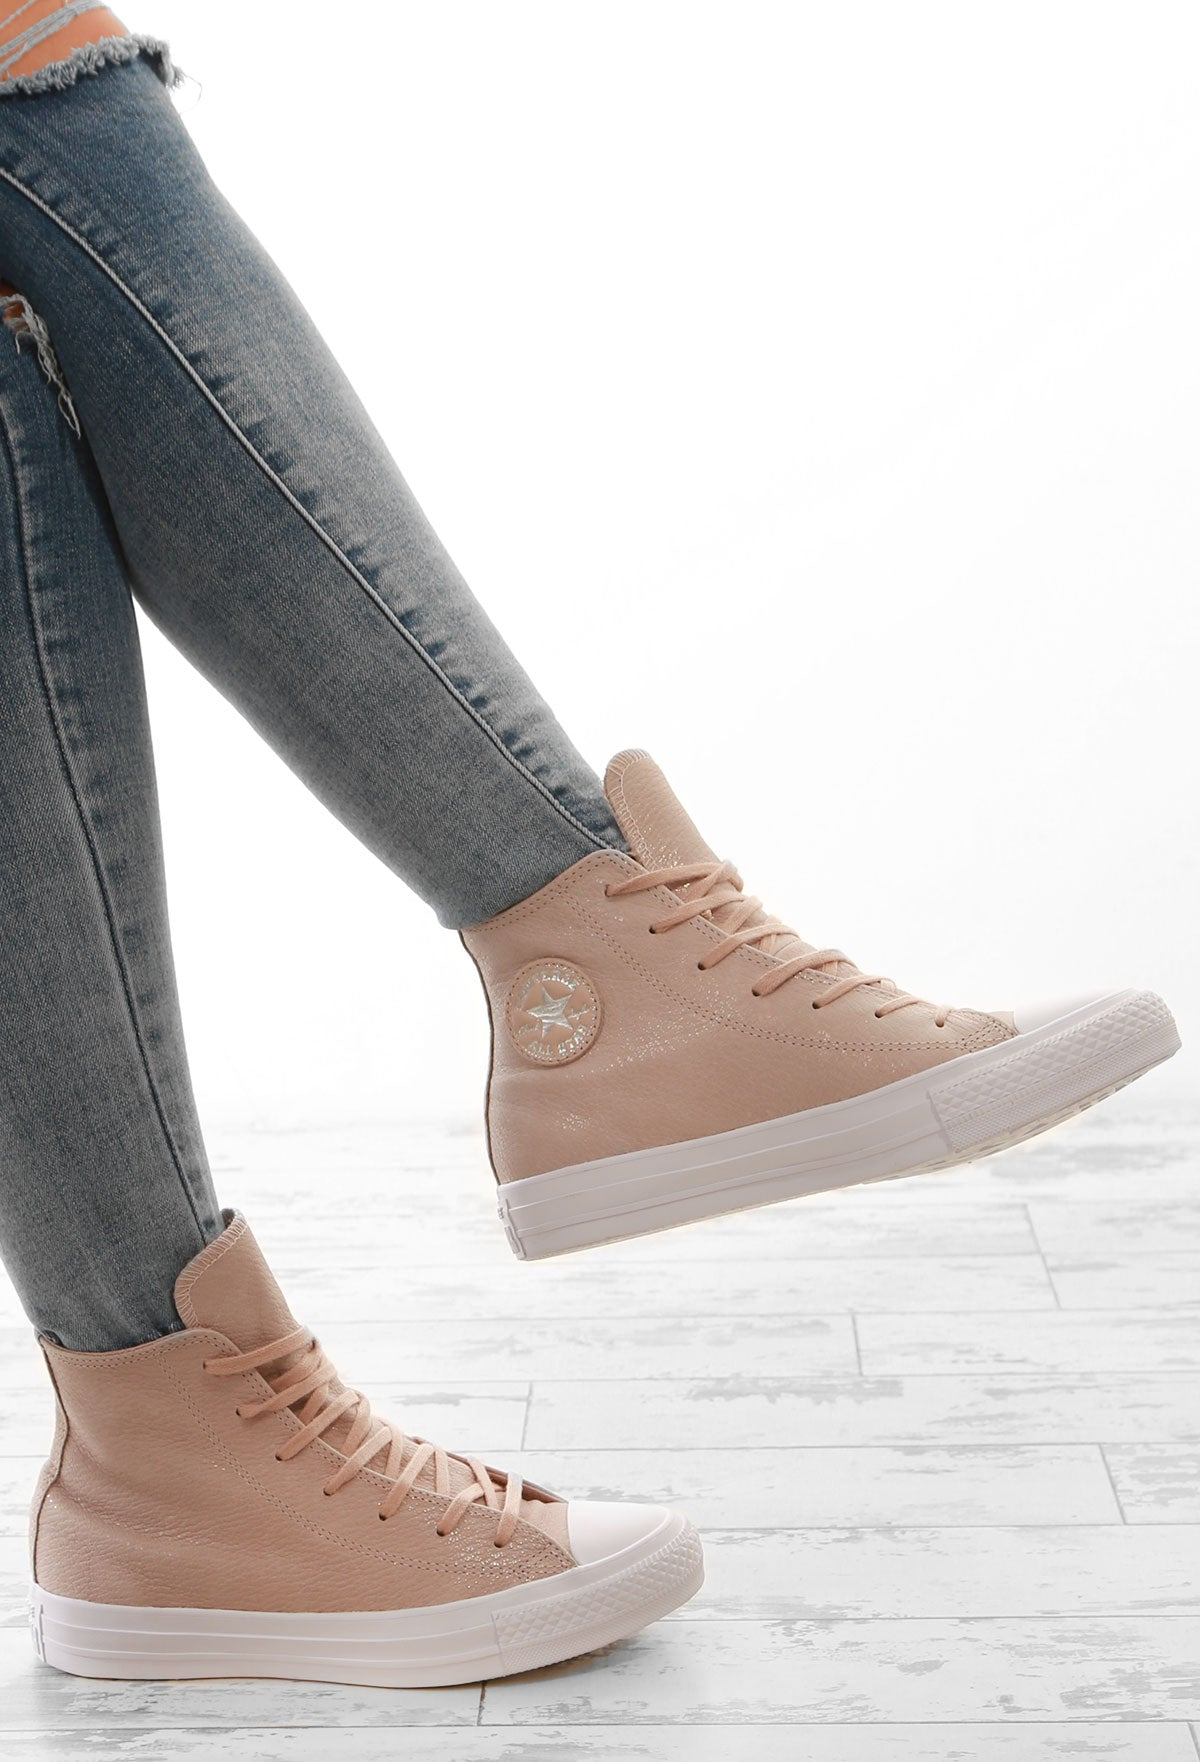 aac888908692 Chuck Taylor Converse Nude High Top Trainers – Pink Boutique UK